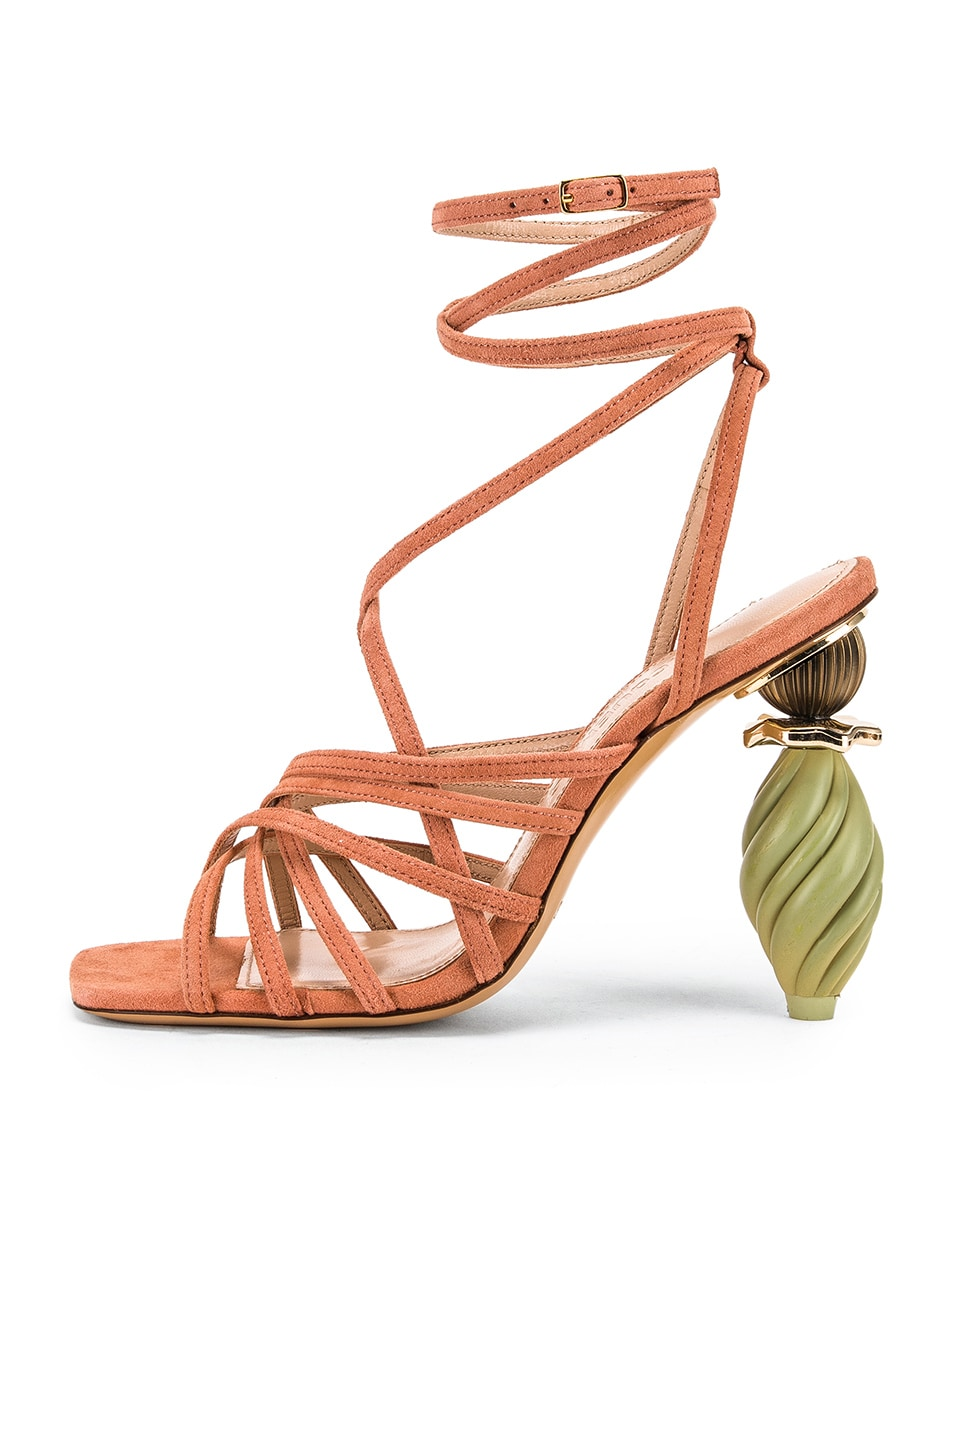 Image 7 of JACQUEMUS Pisa Sandals in Dark Nude Suede